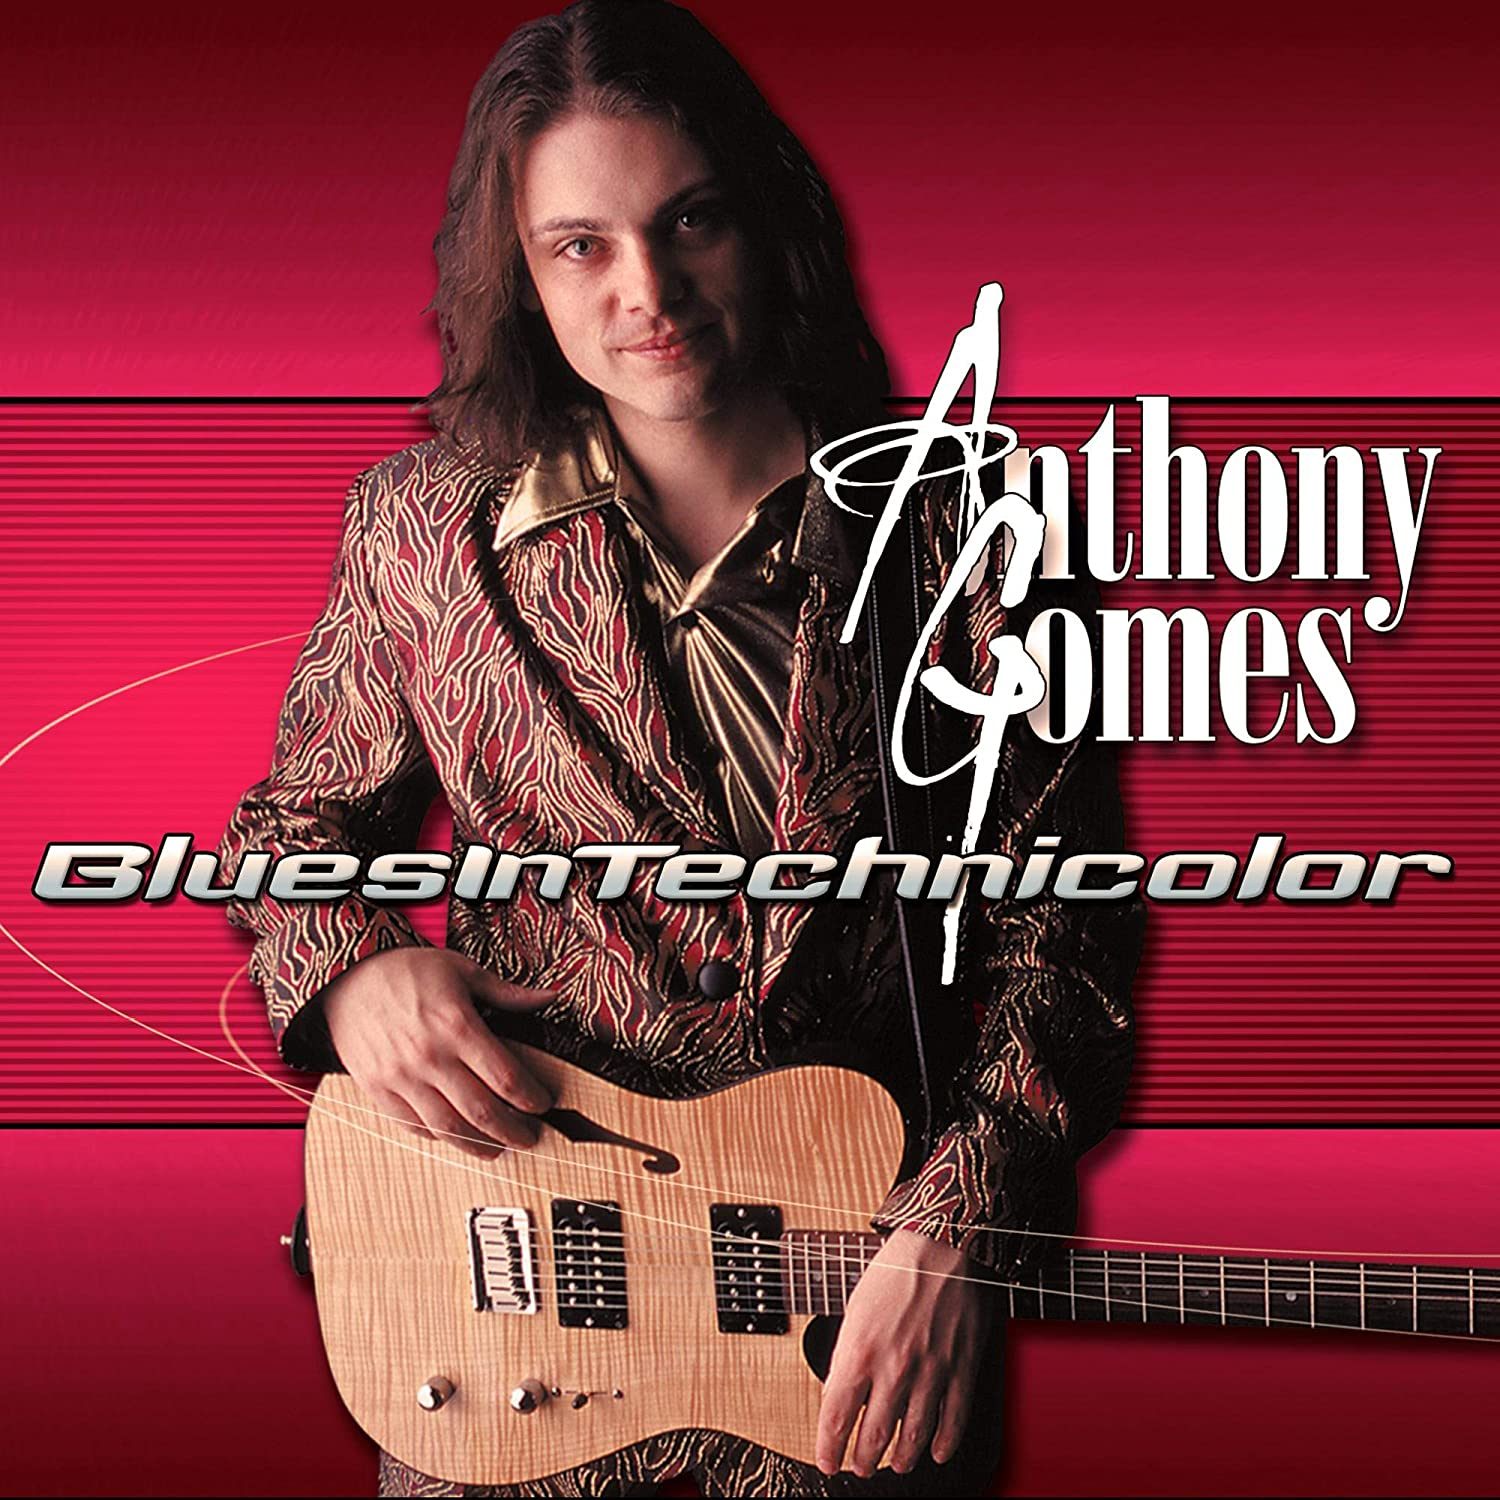 Anthony Gomes - Blues In Technicolor [CD] - Urban Vinyl | Records, Headphones, and more.